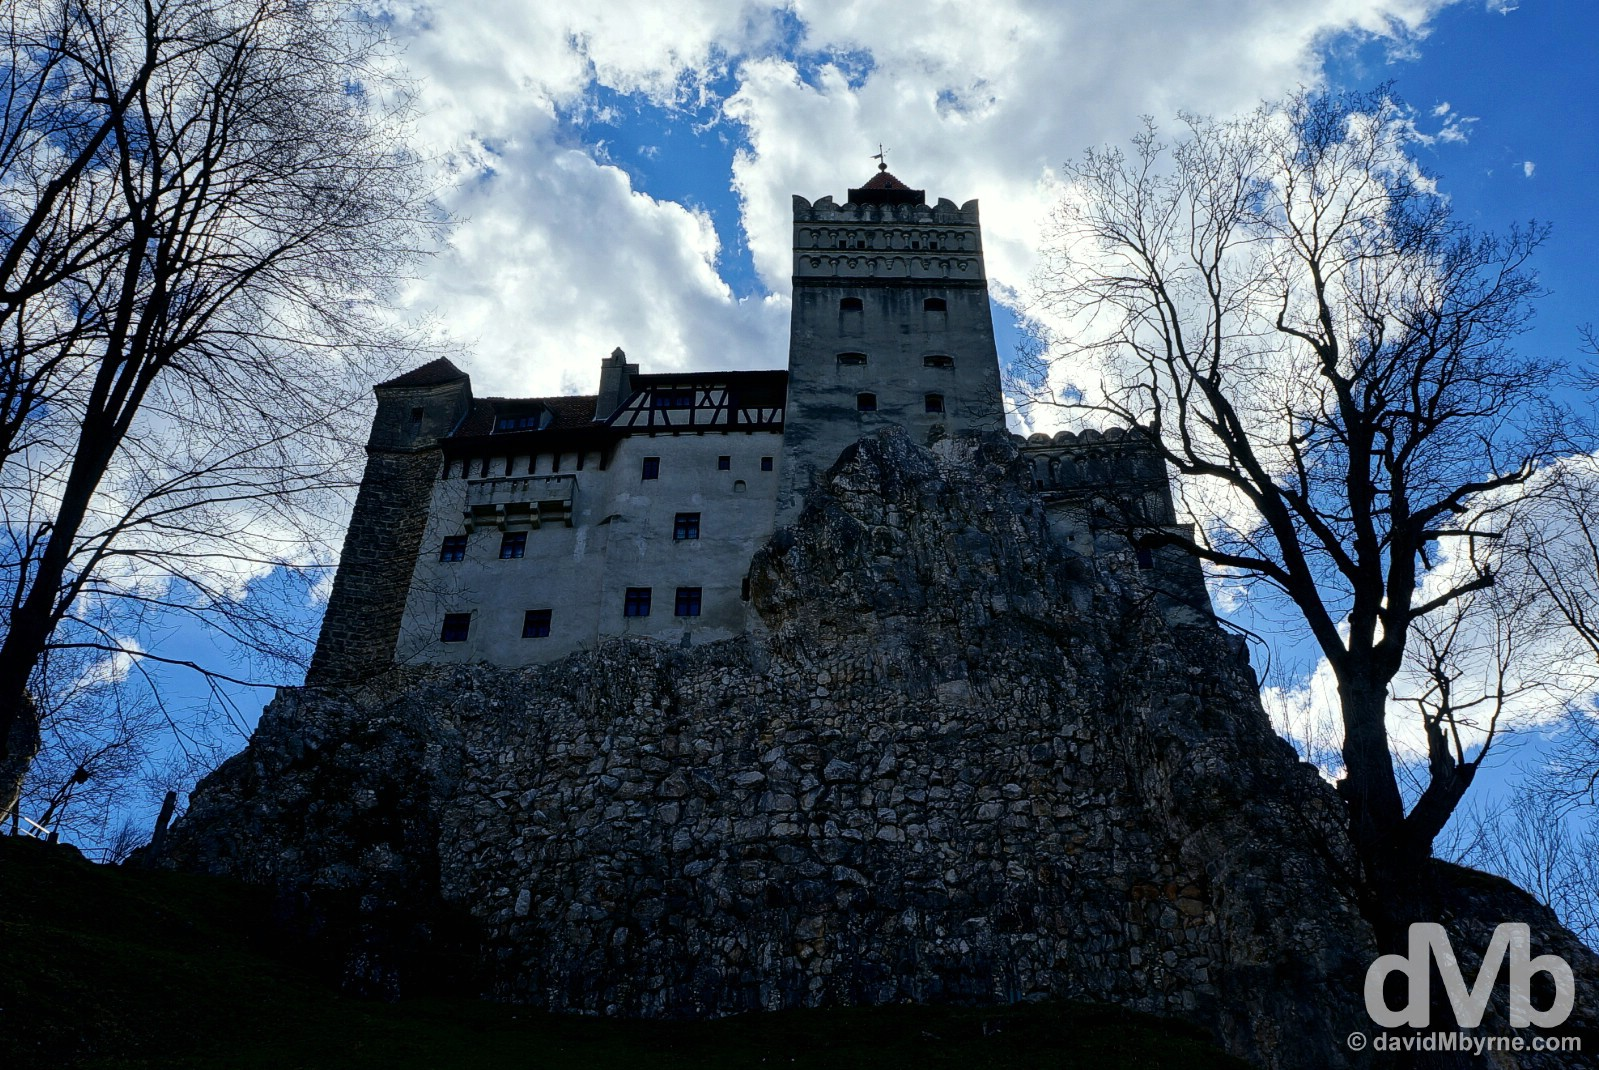 Bran Castle, Bran, Transylvania, Romania. April 2, 2015.